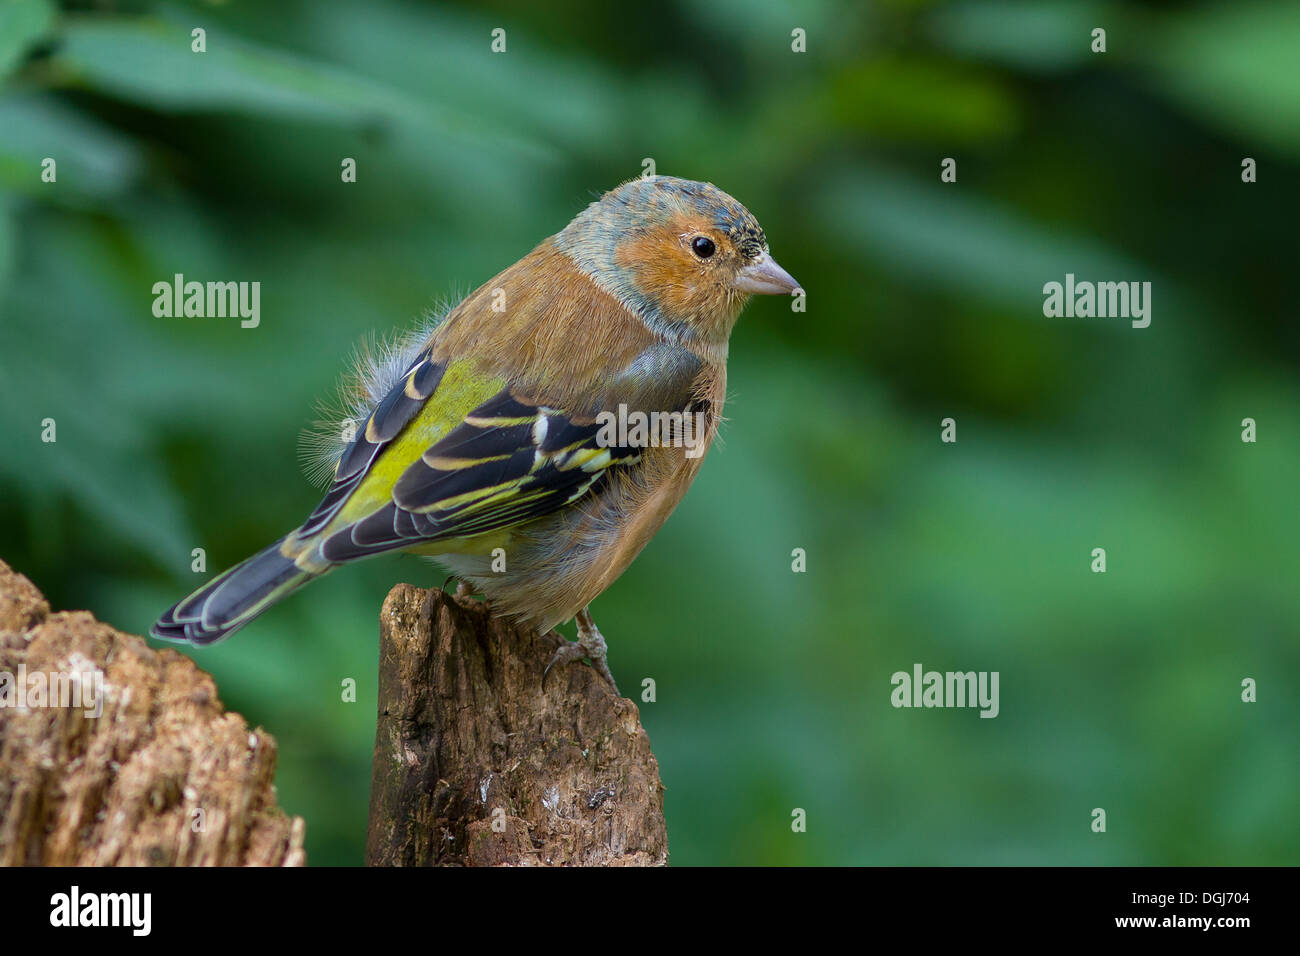 A juvenile Chaffinch on an old stump. - Stock Image